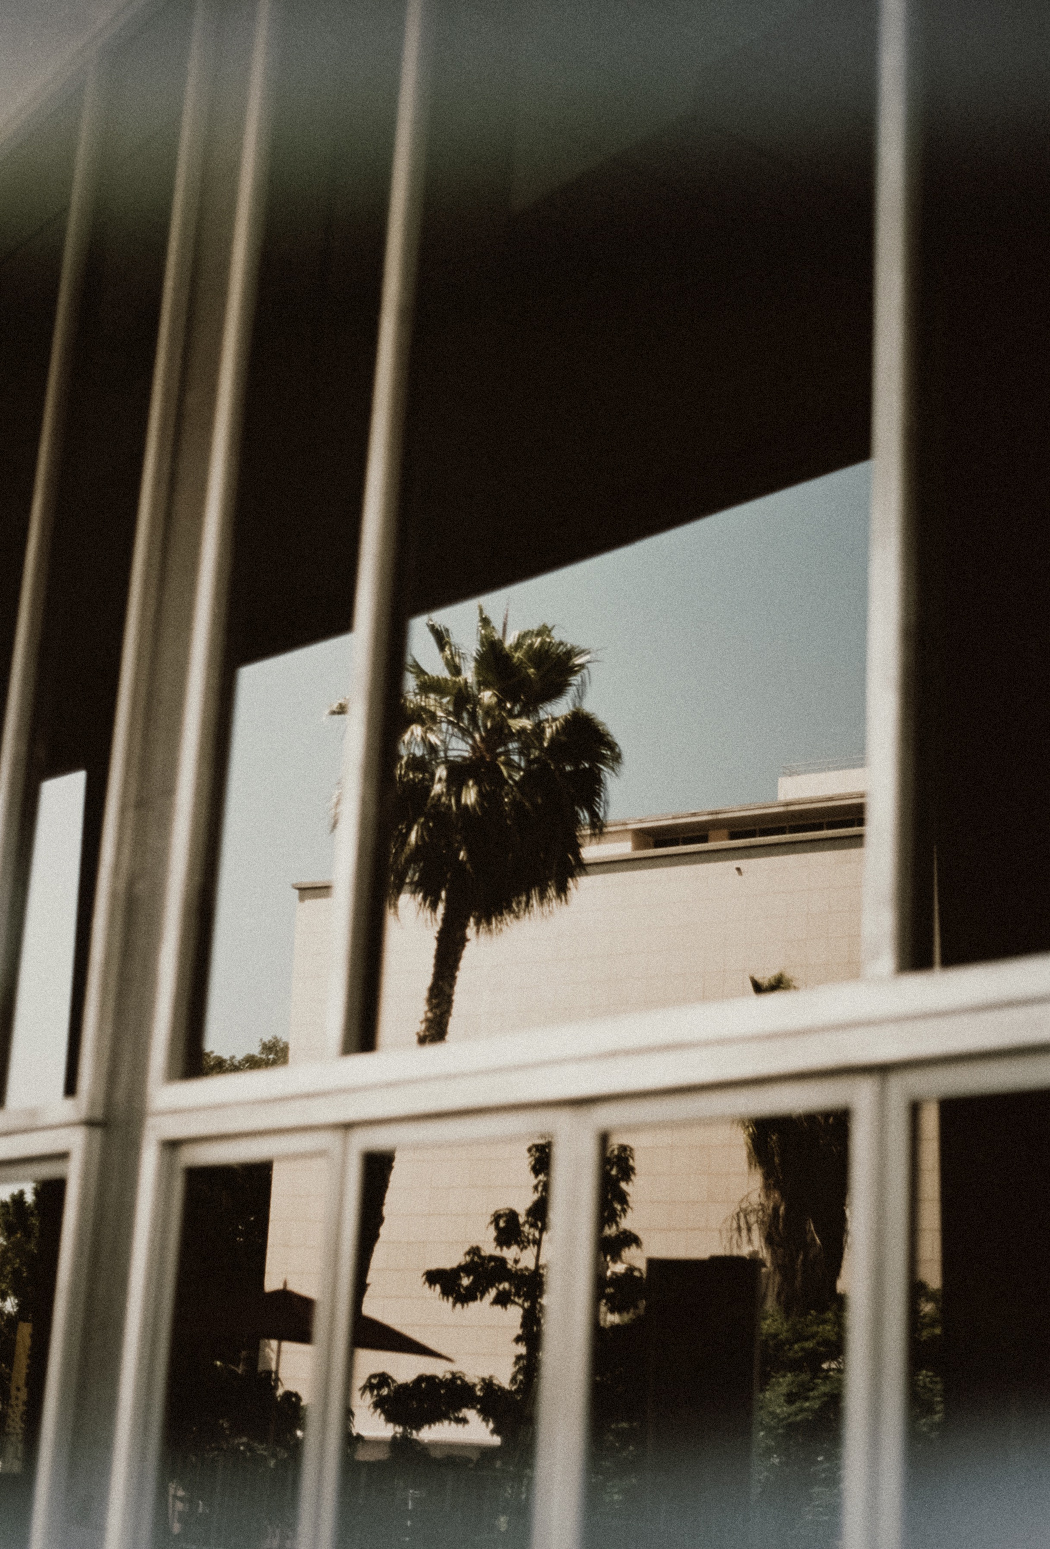 Los Angeles On Film. Shot by Fiona Dinkelbach